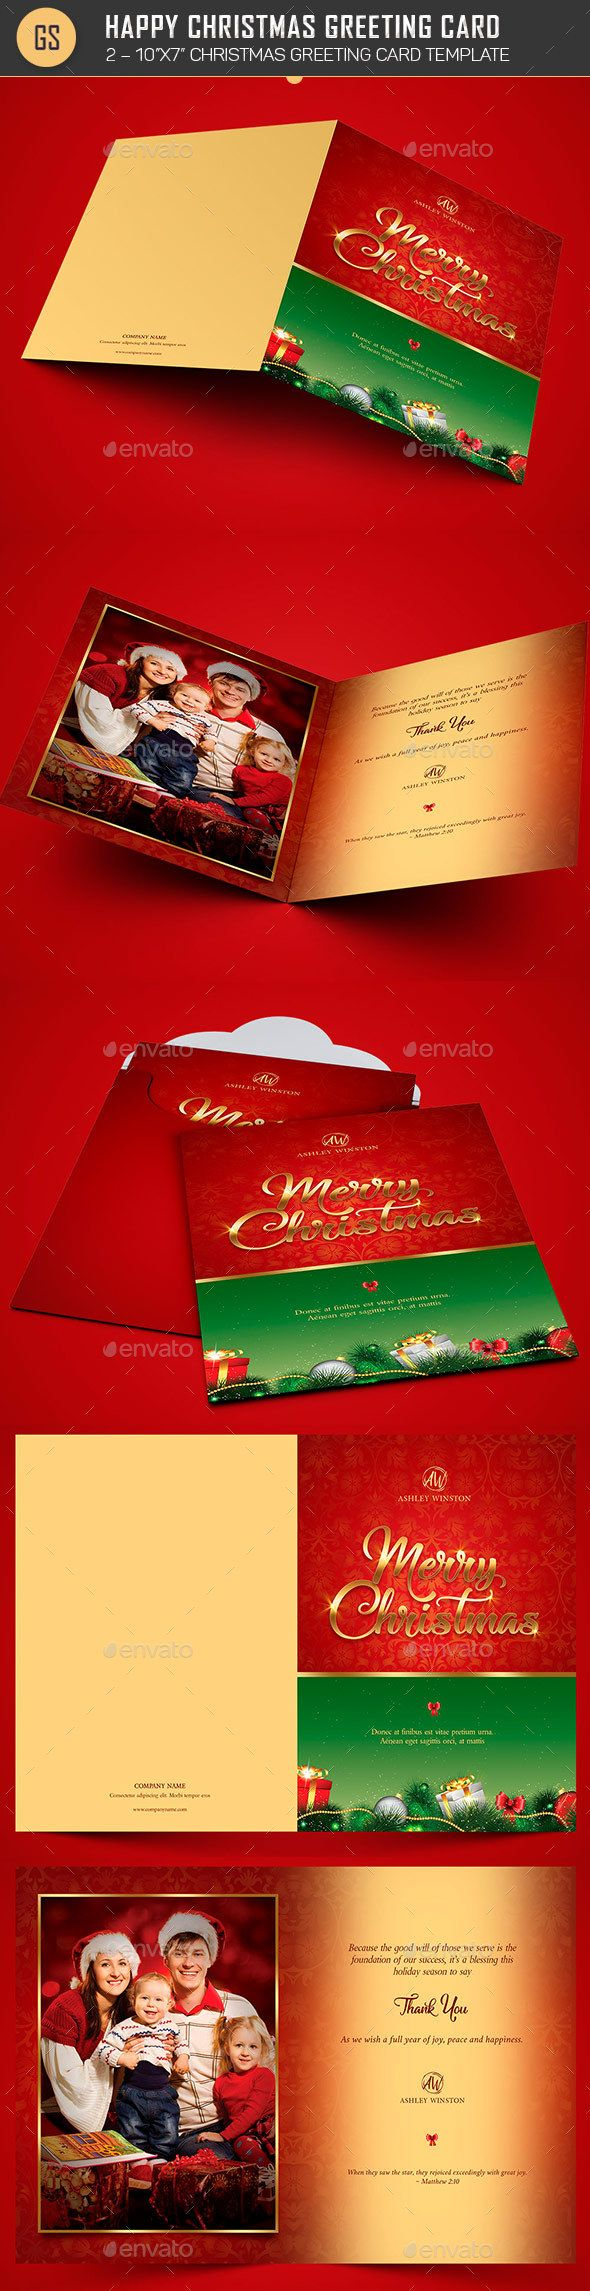 17 best images about christmas print templates happy christmas greeting card template